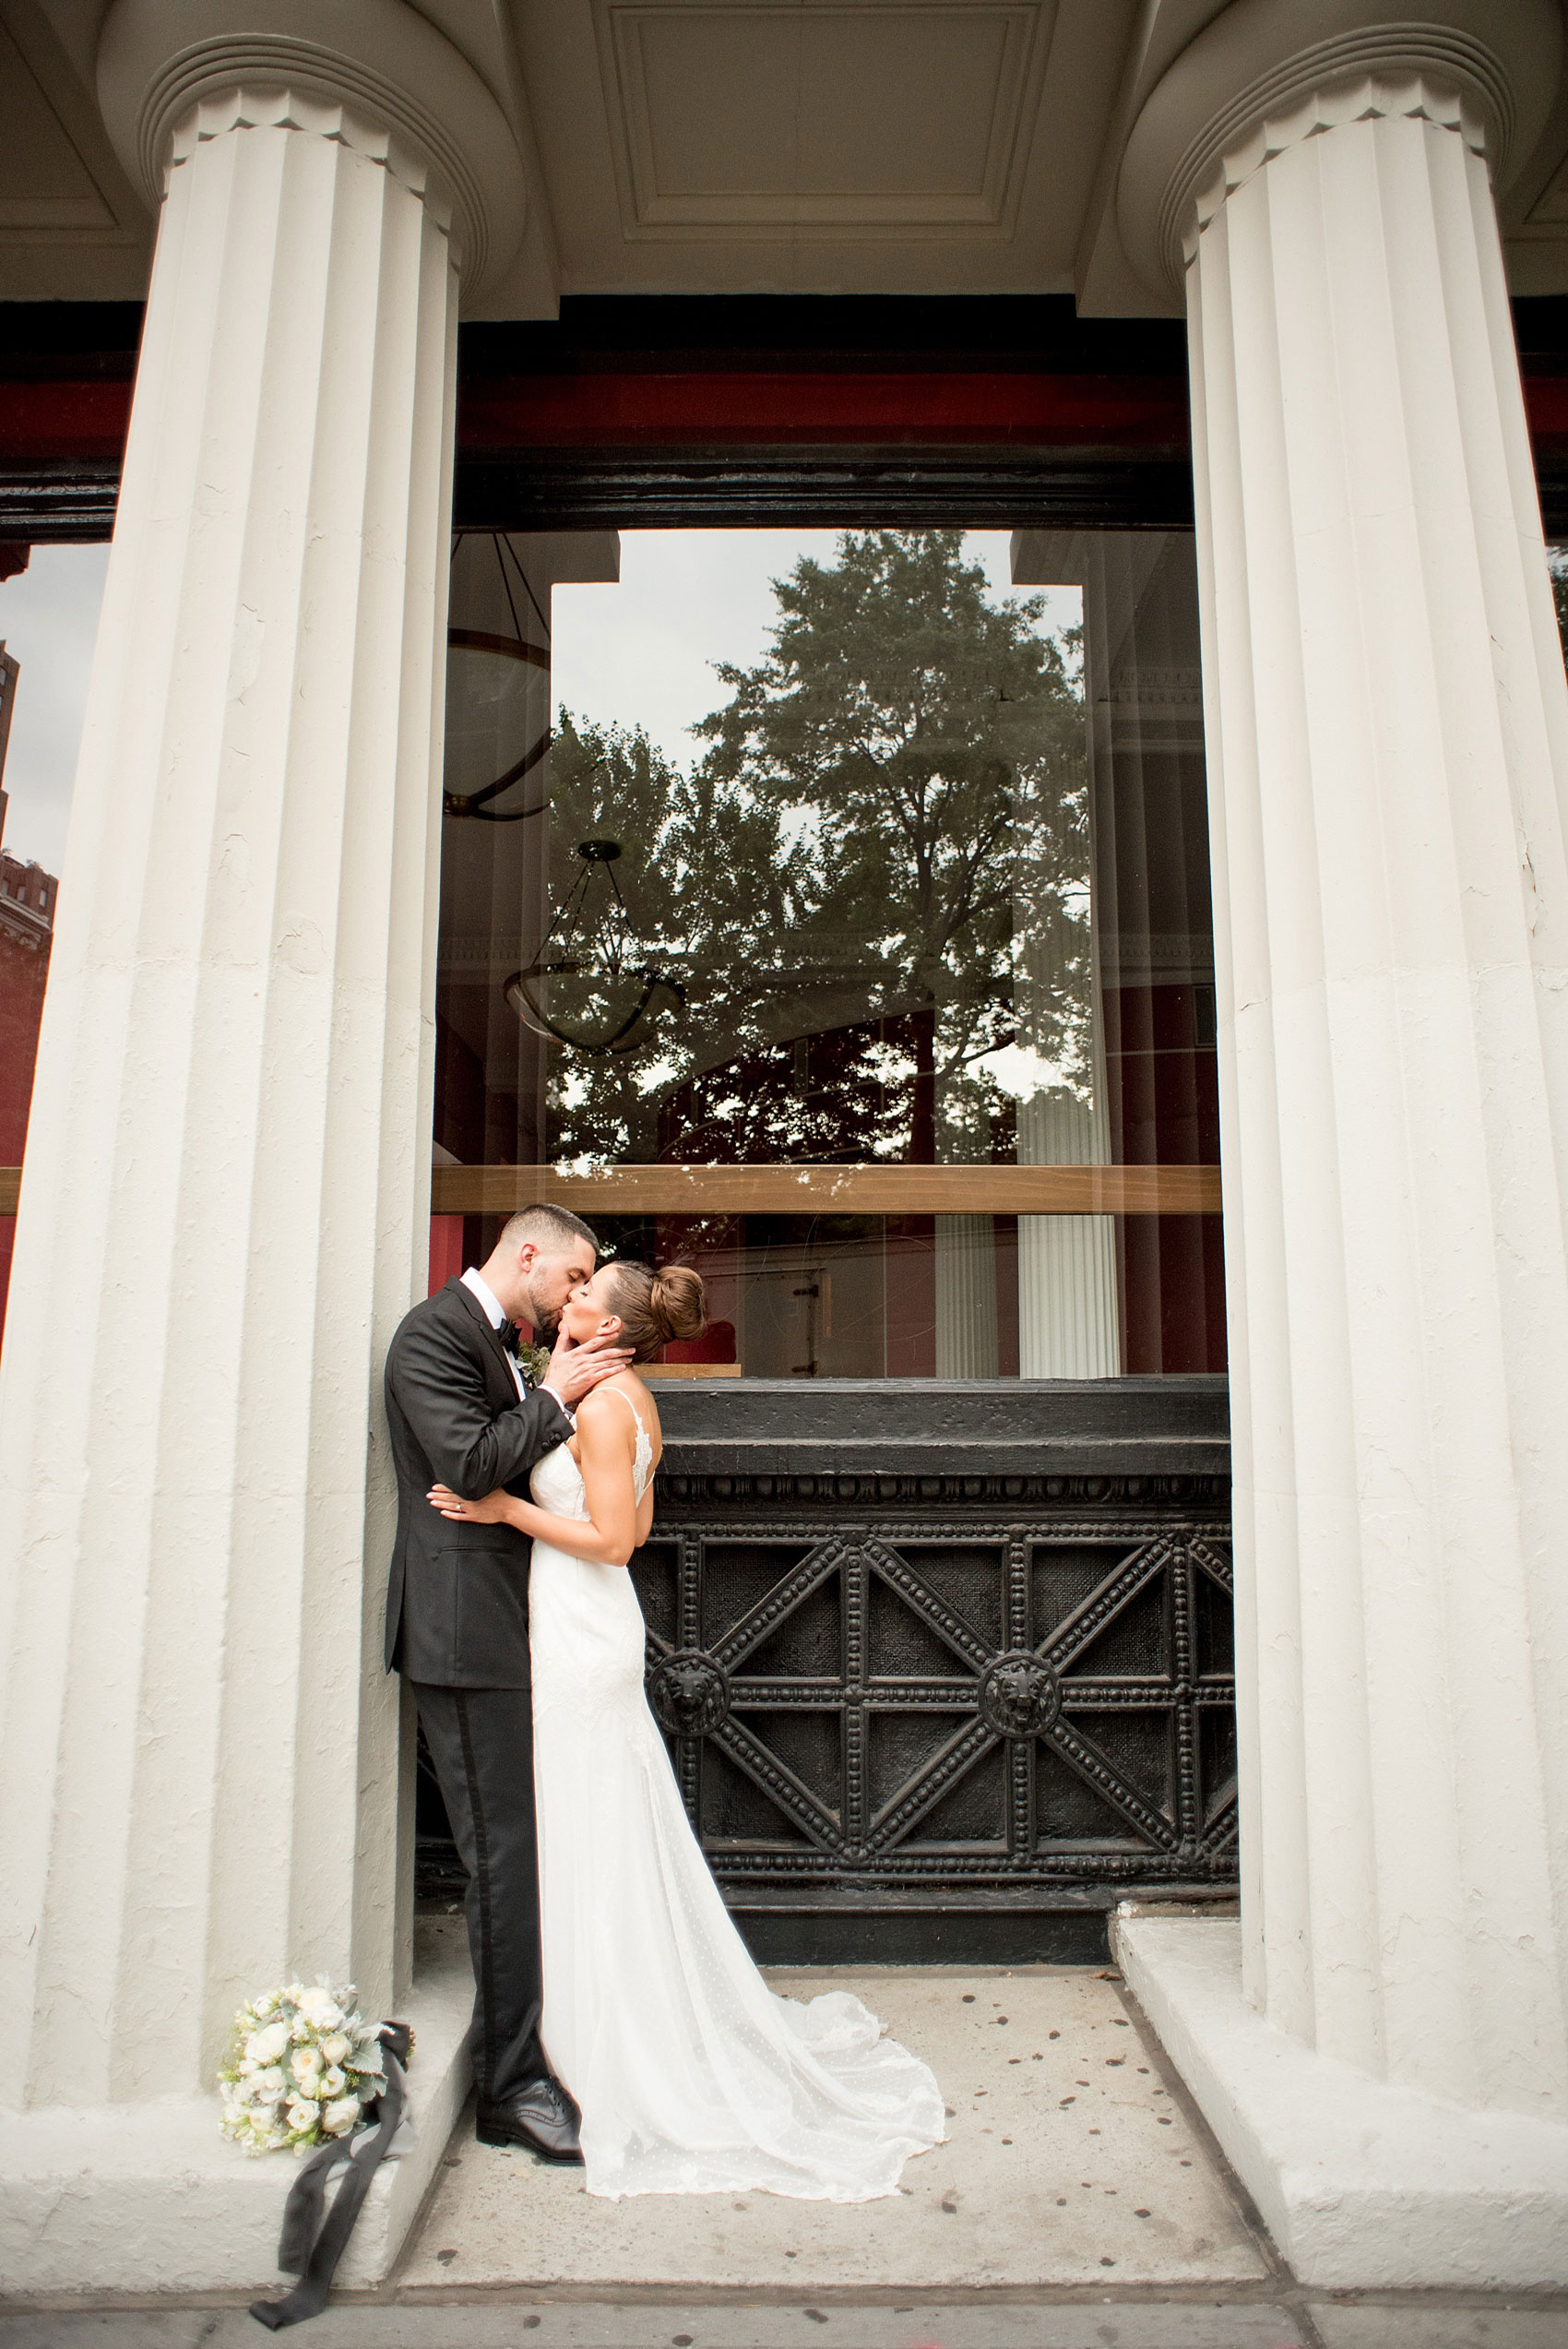 Mikkel Paige Photography photos of a luxury wedding in NYC. Image of the bride and groom near Washington Square Park kissing between white columns.